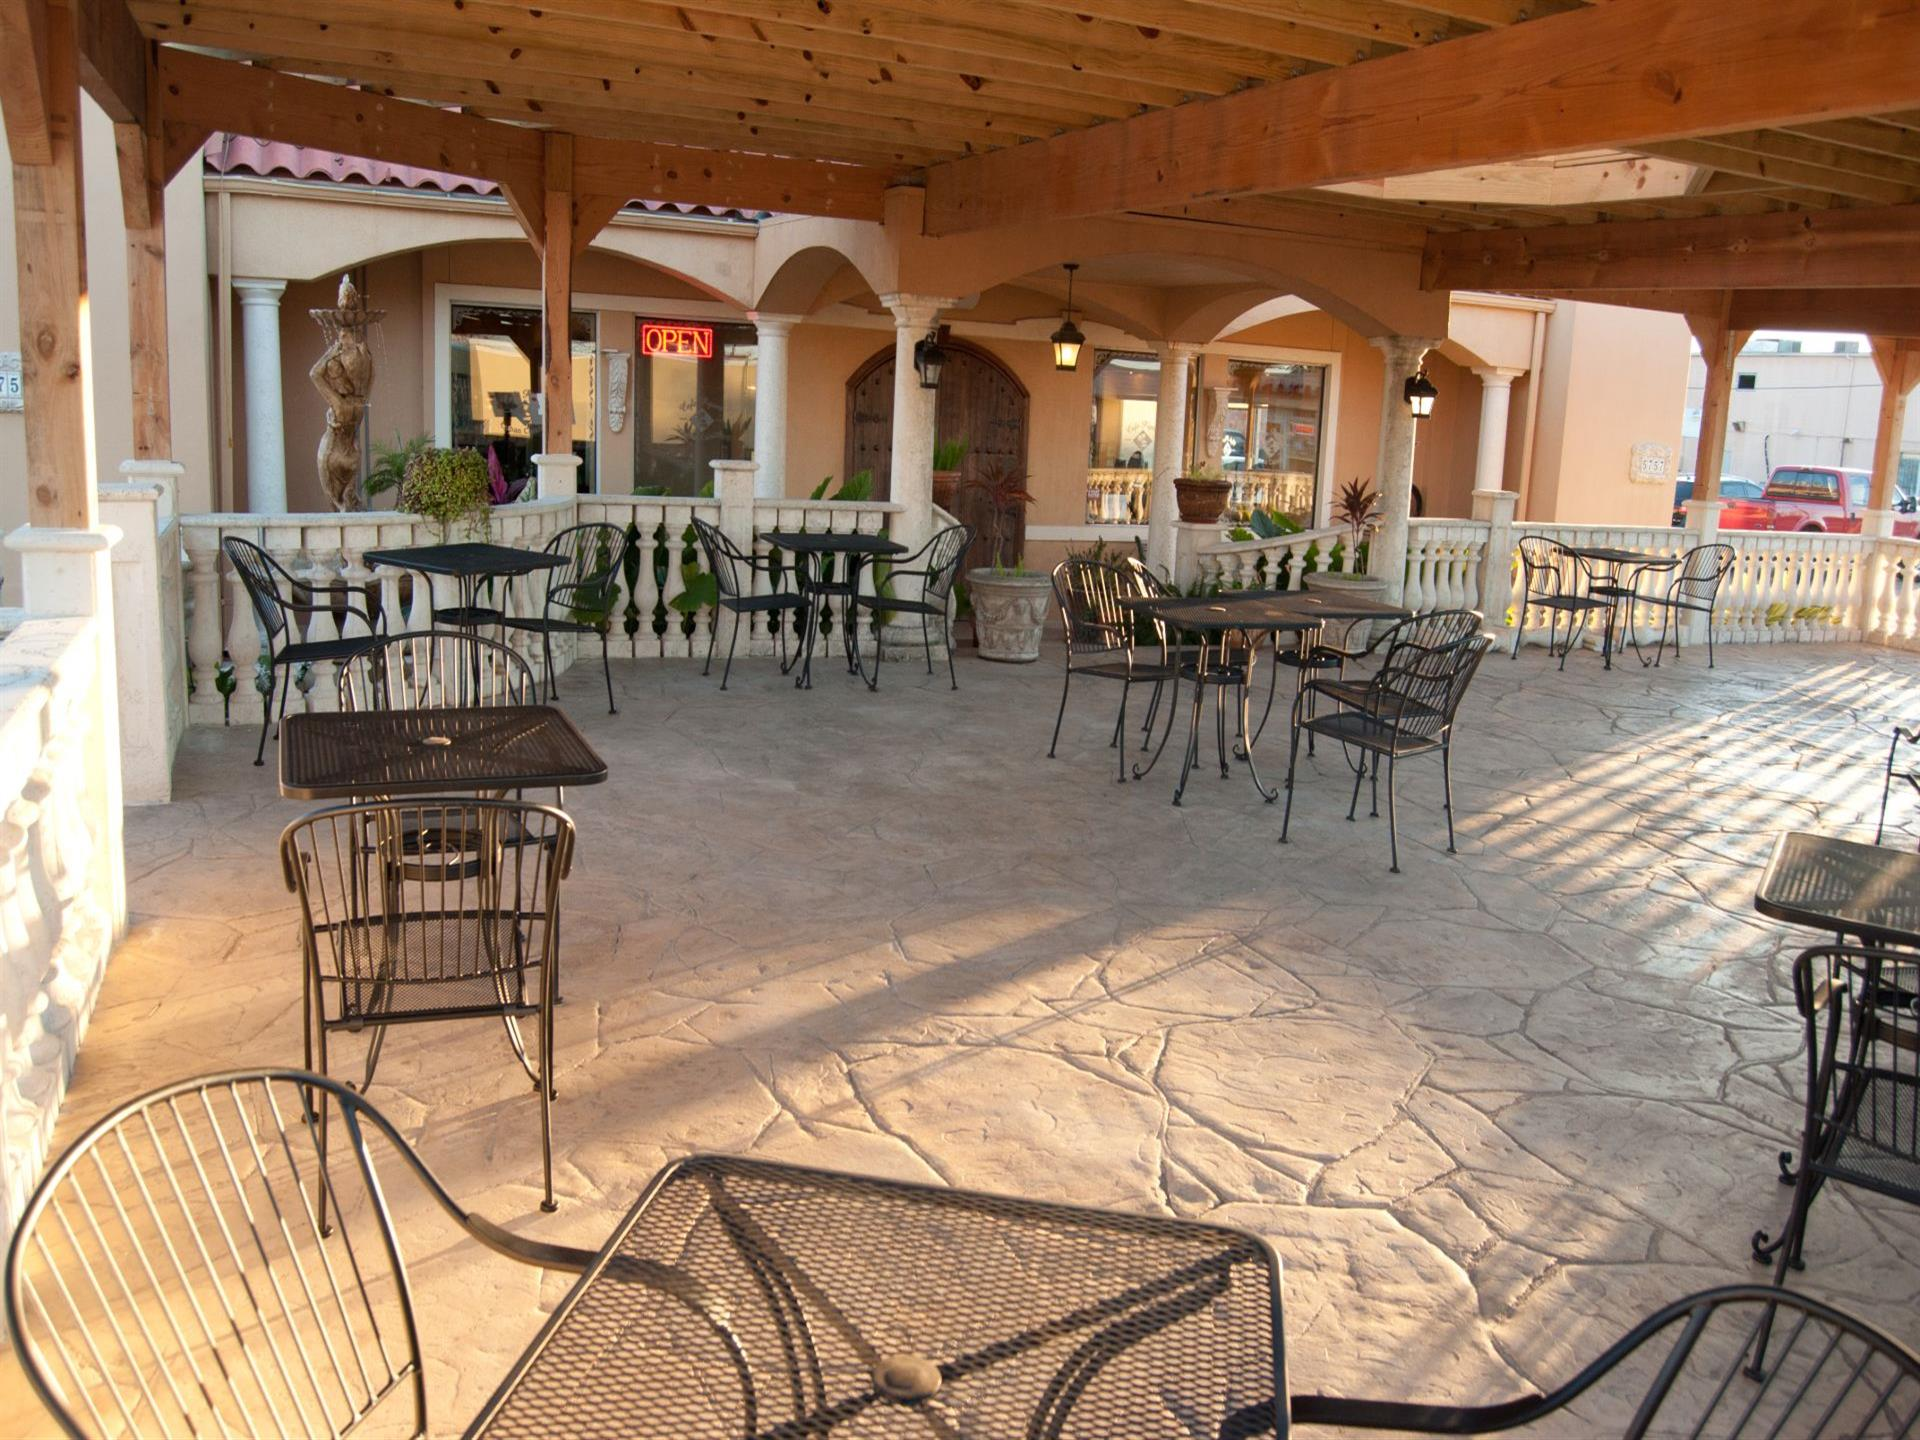 Outdoor patio. Black metal tables and chairs.